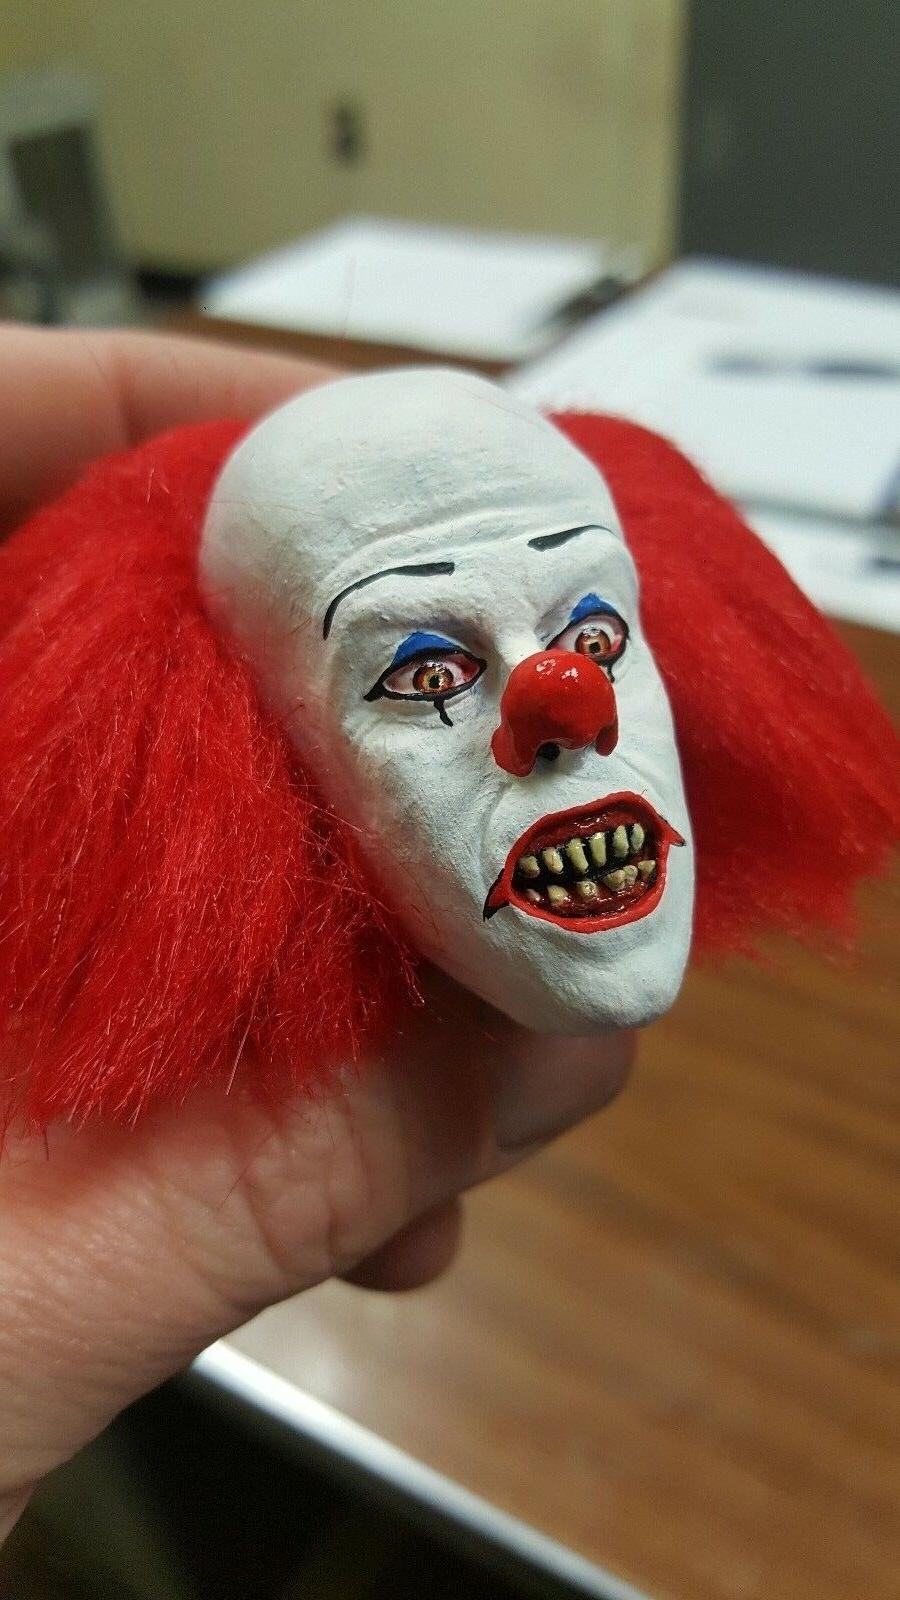 tim curry pennywise the clown fang version